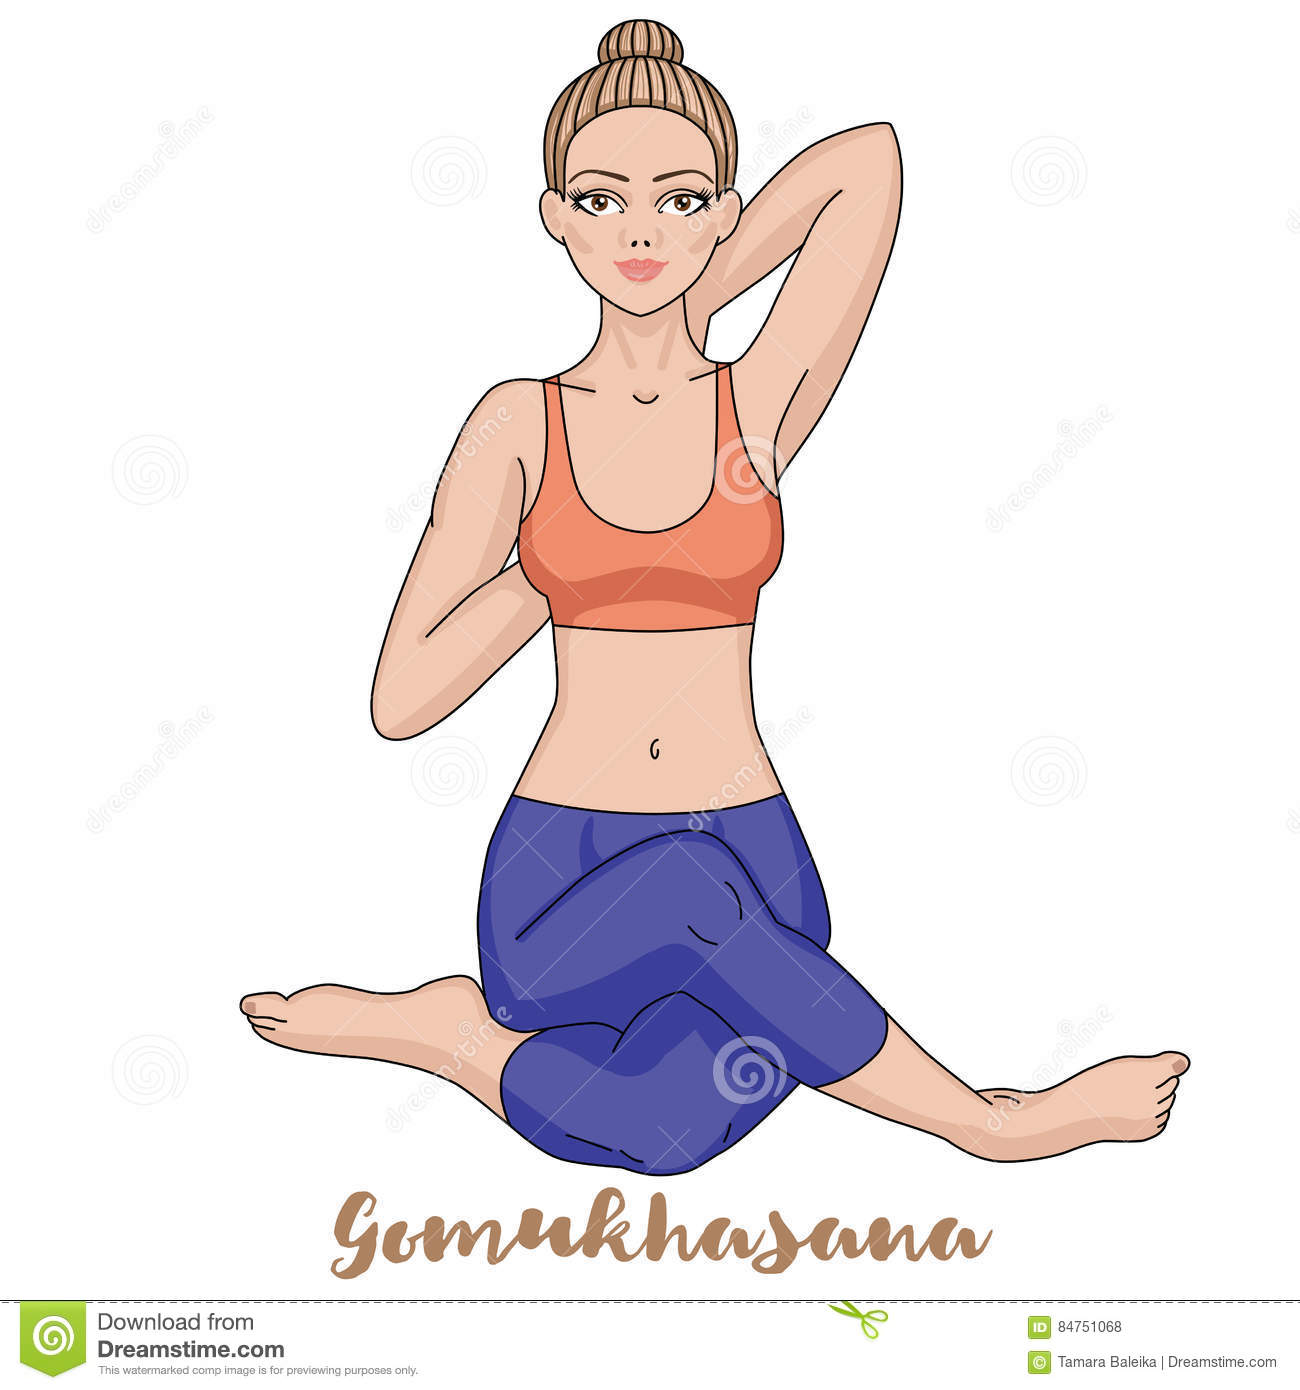 Gomukhasana With Image